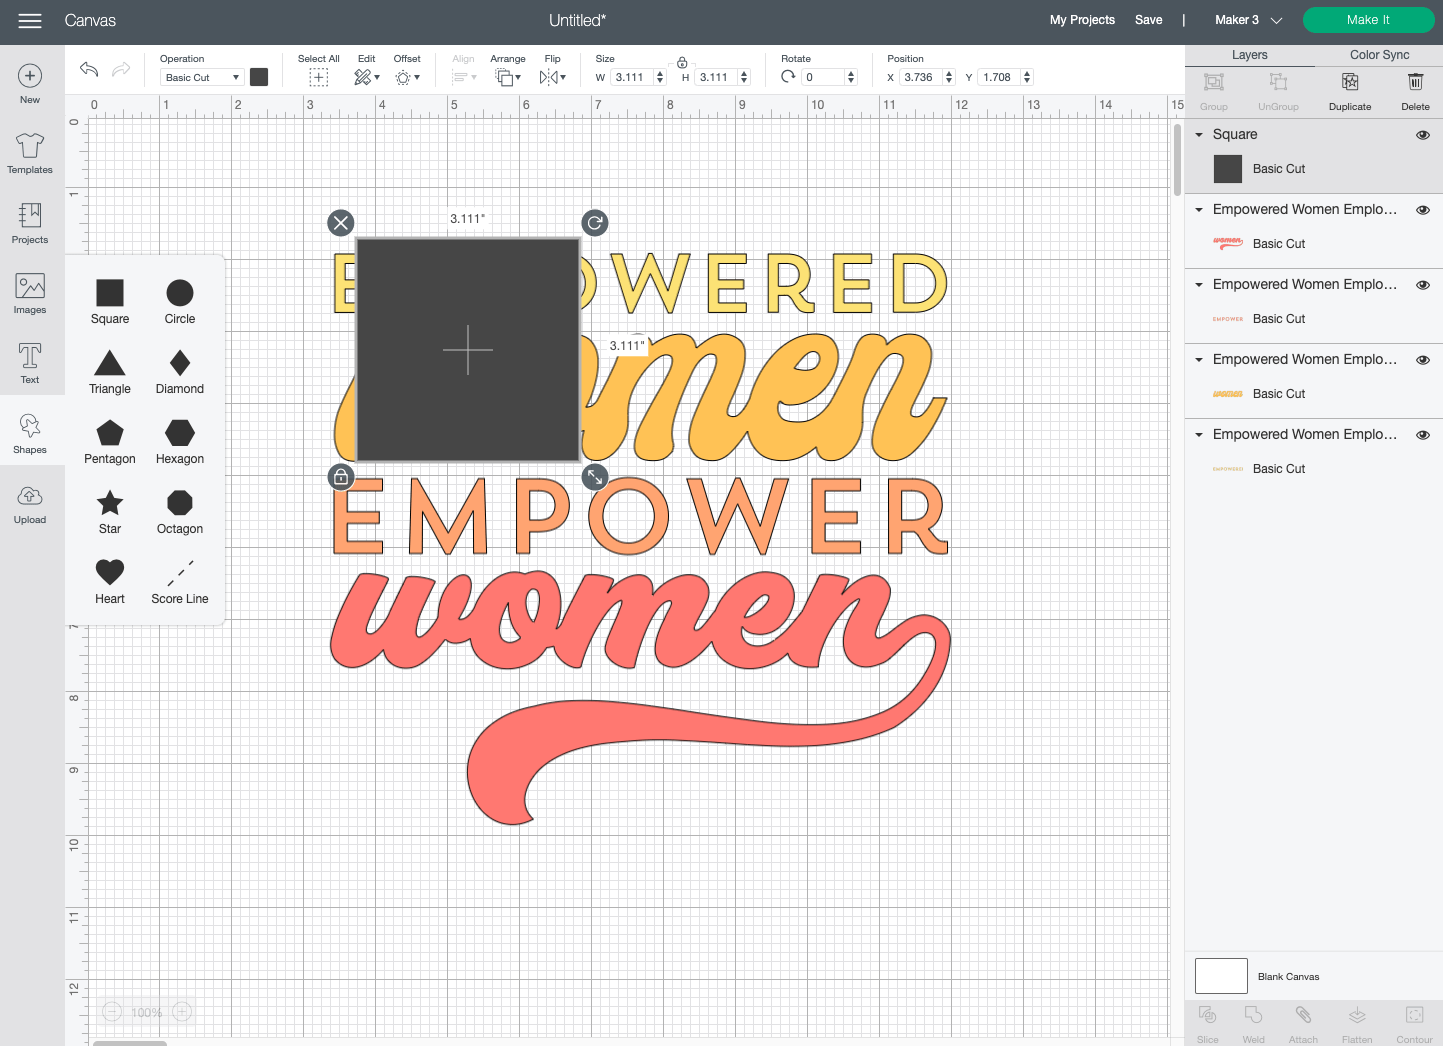 Cricut Design Space: Square added to Canvas